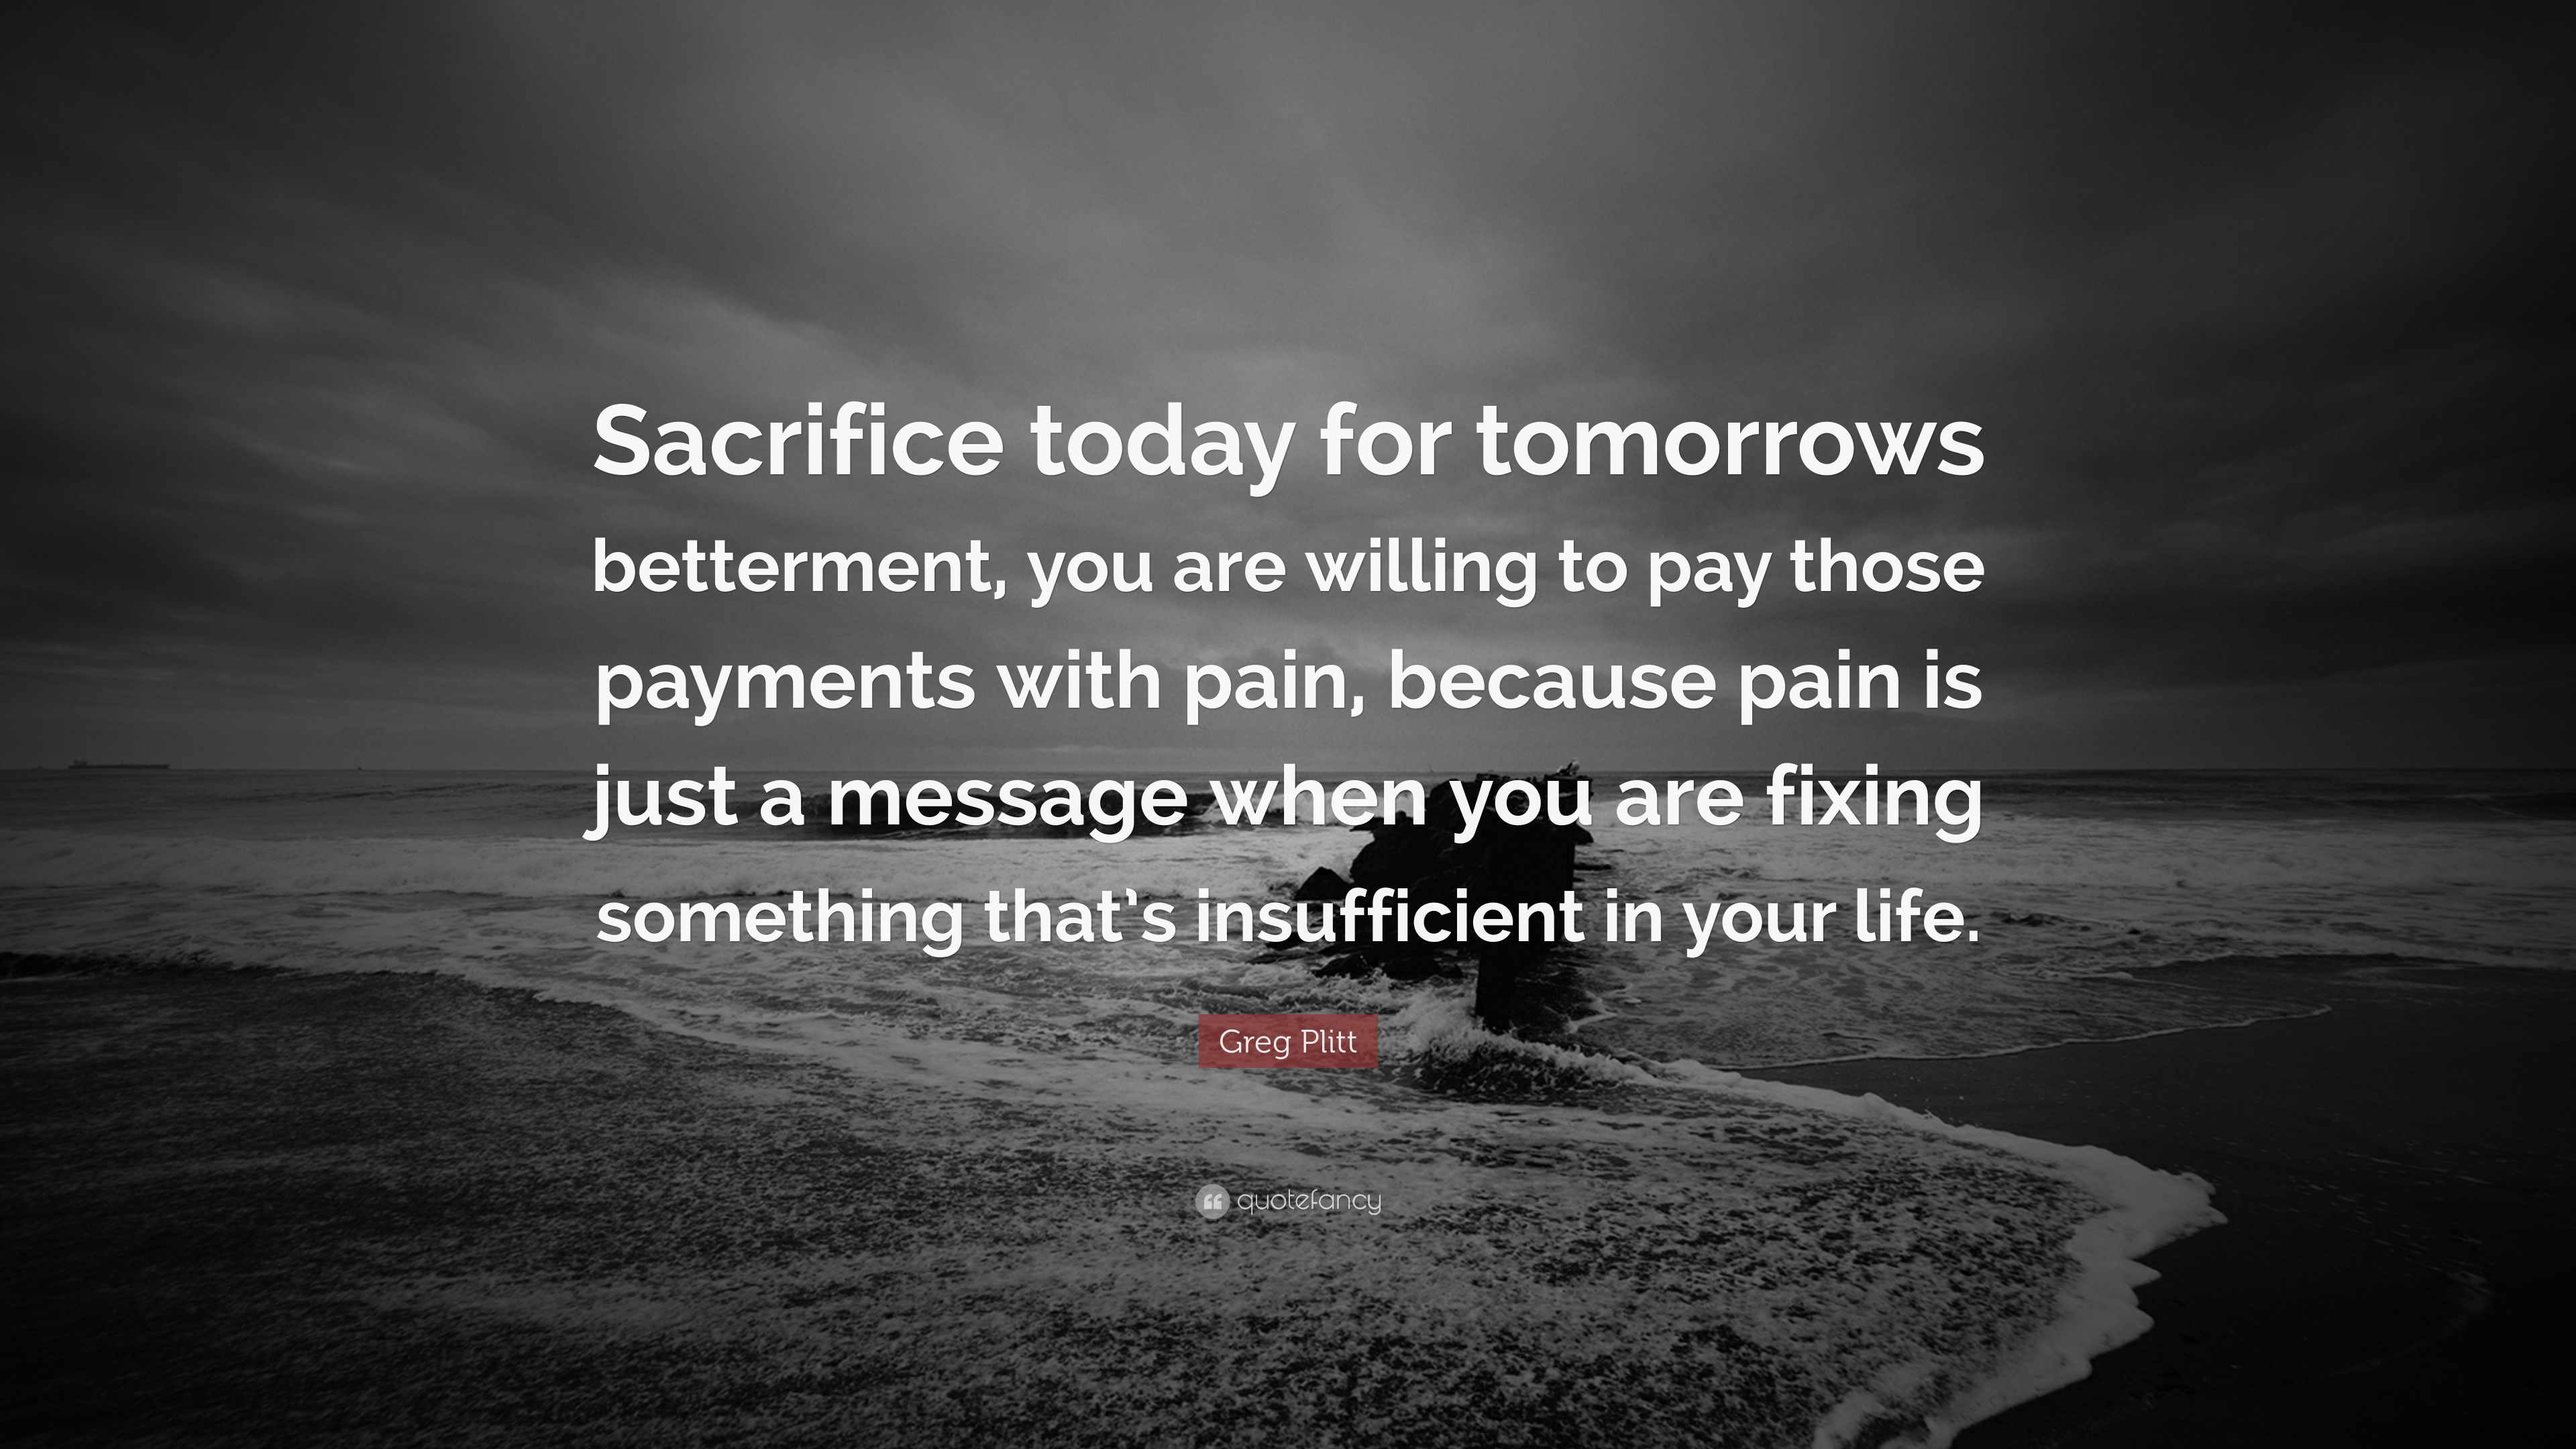 Life Sacrifice Quotes Endearing Sacrifice Quotes 40 Wallpapers  Quotefancy